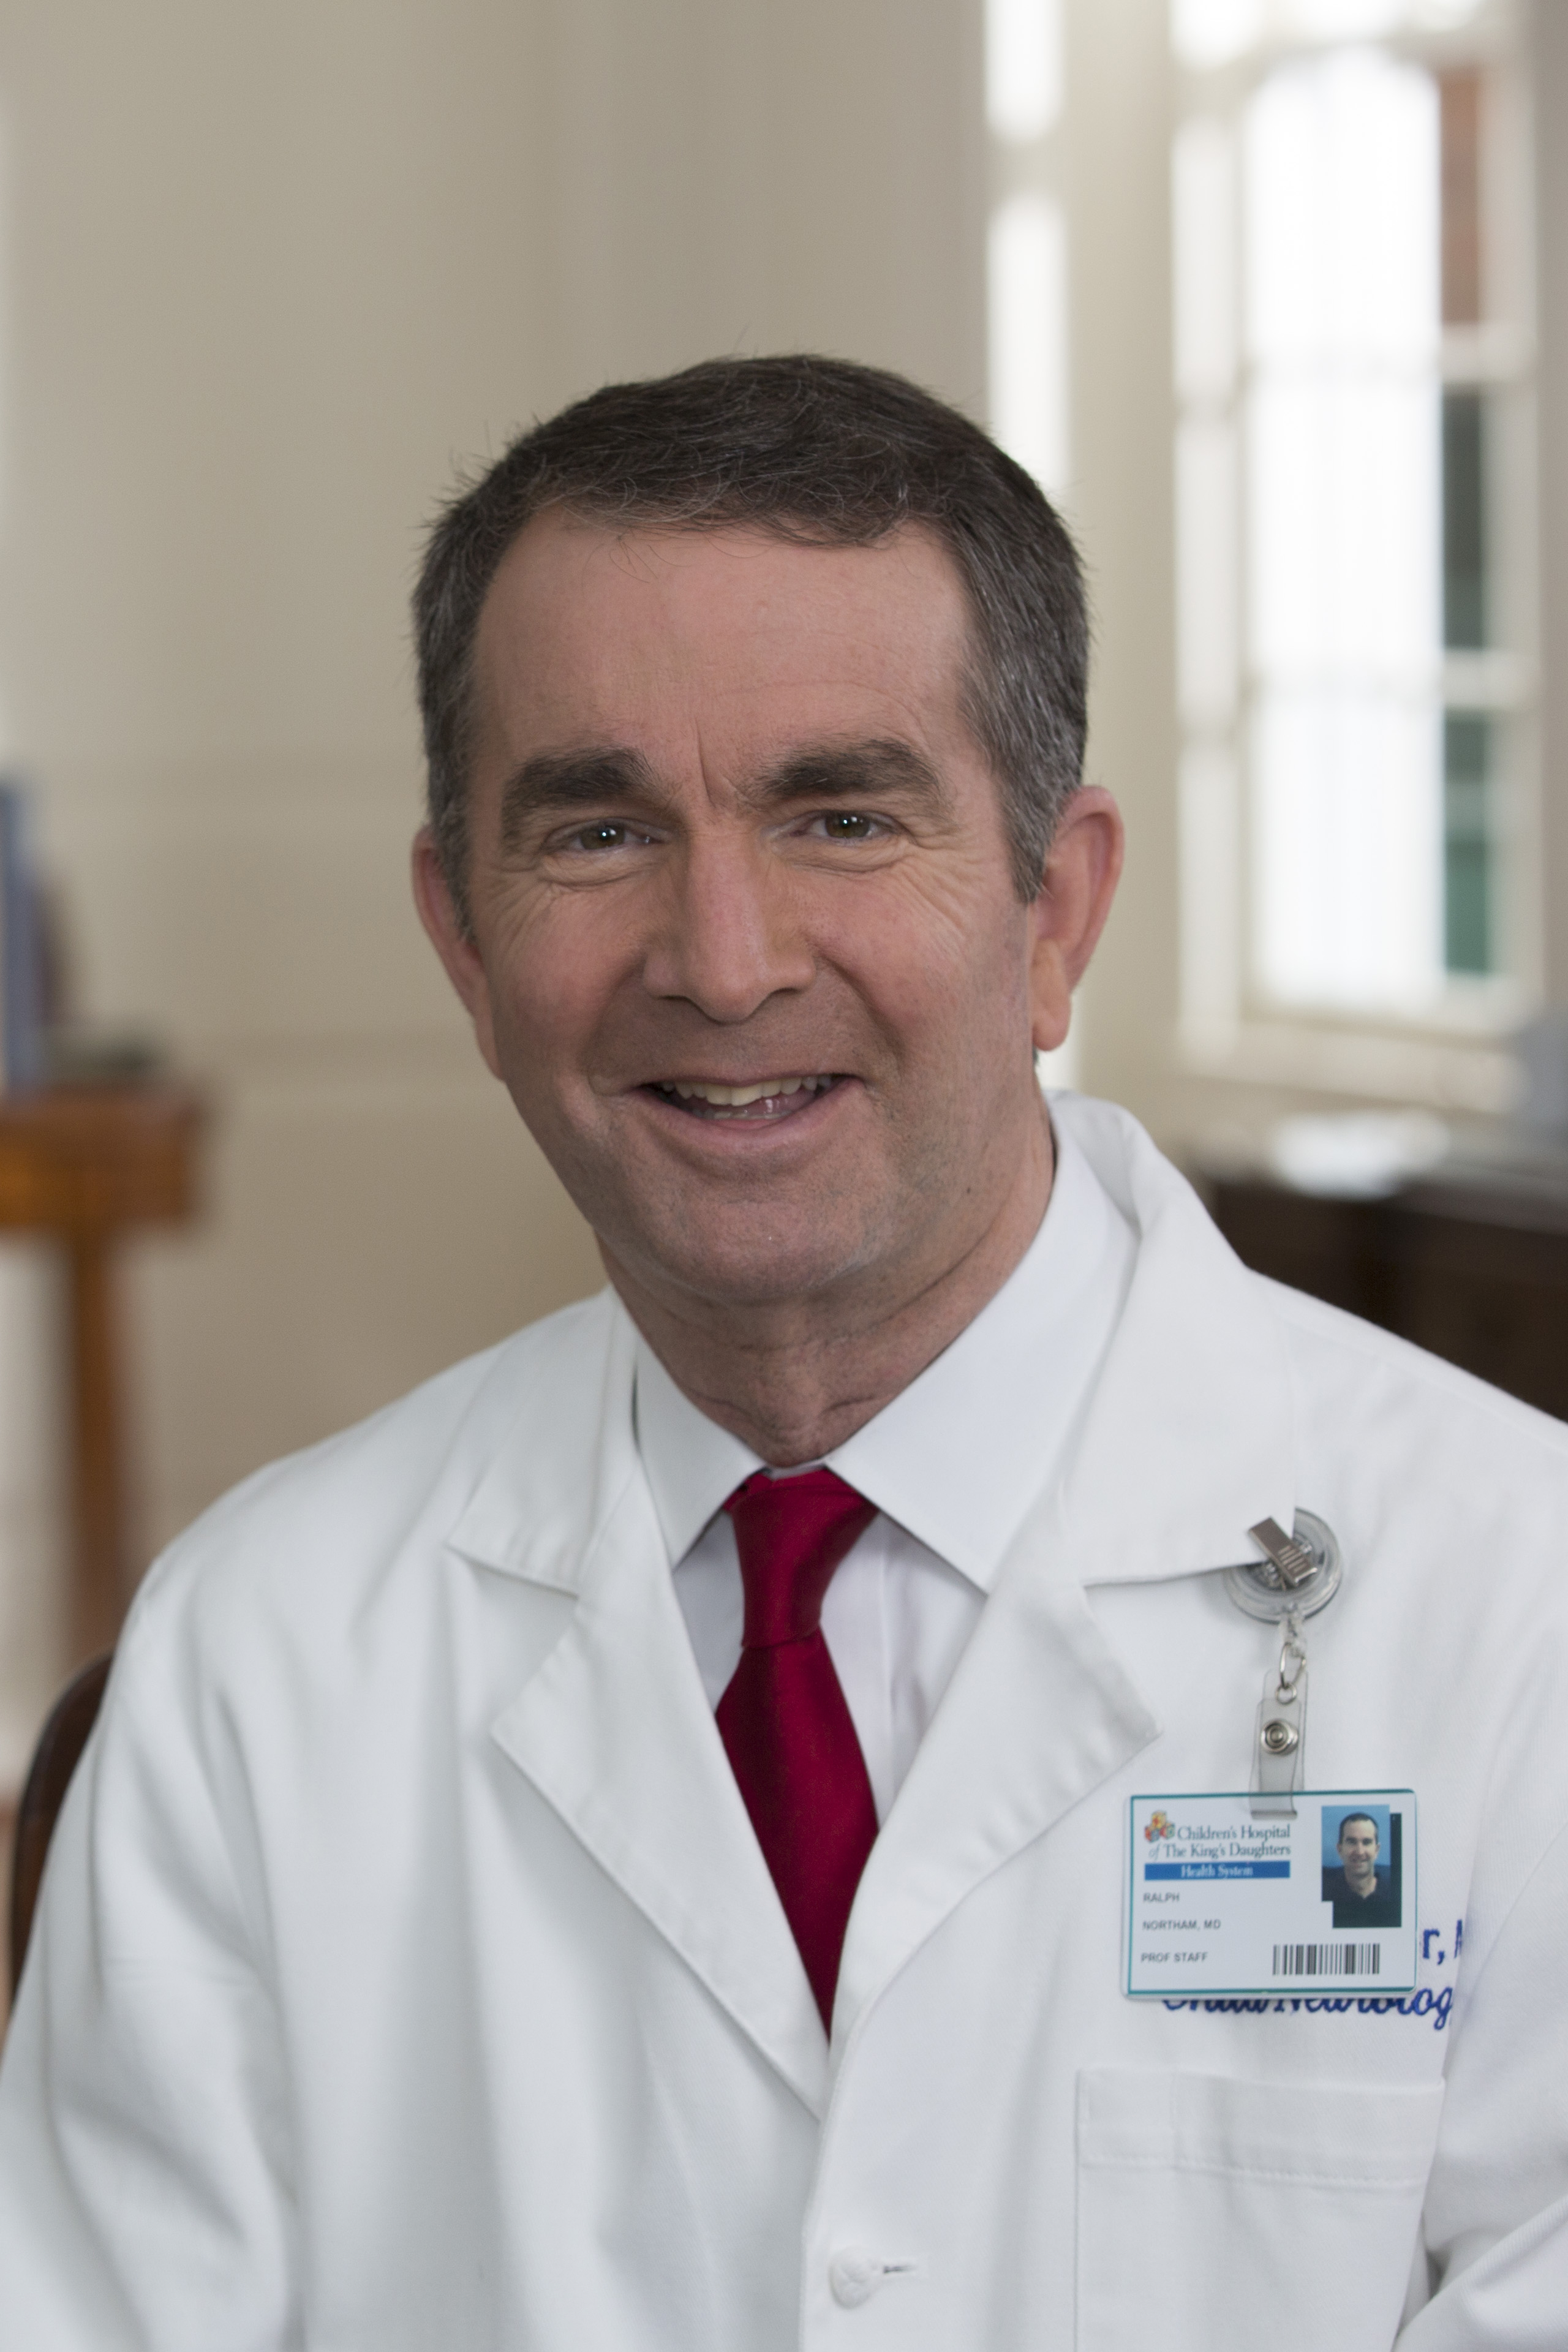 Ralph S. Northam, candidate for Virginia governor